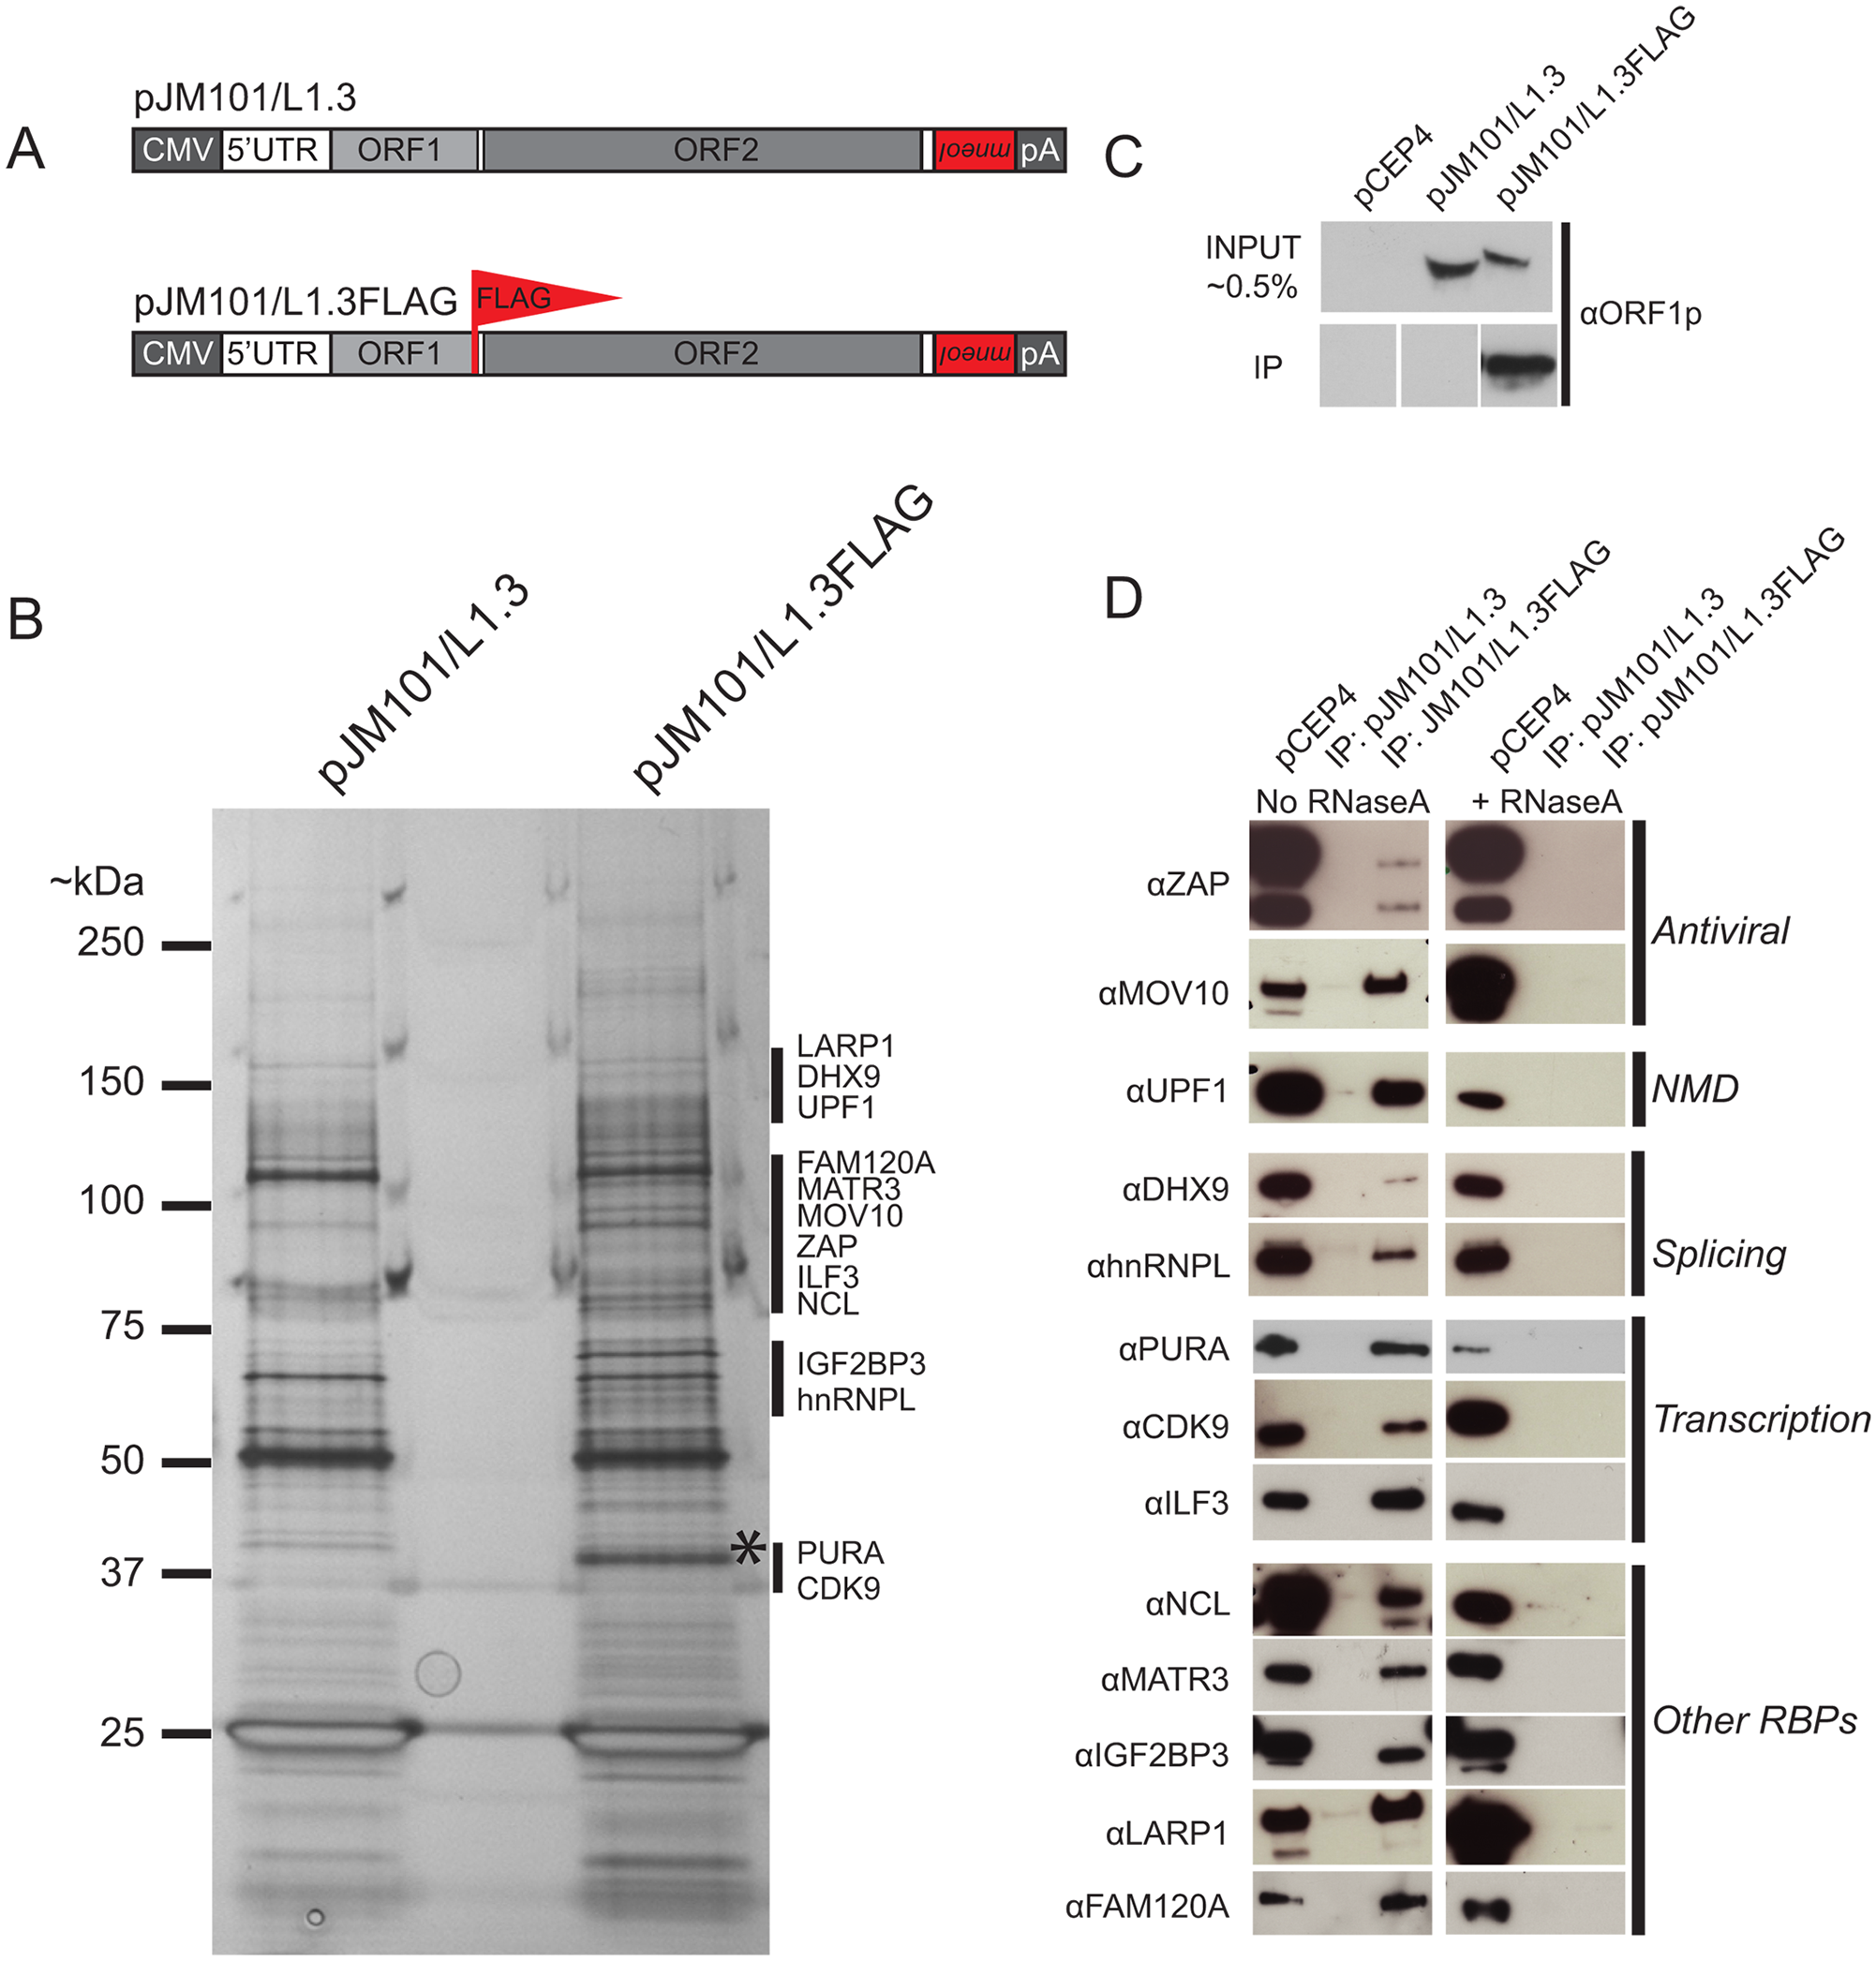 The identification of host proteins immunoprecipitated with L1 ORF1p-FLAG.